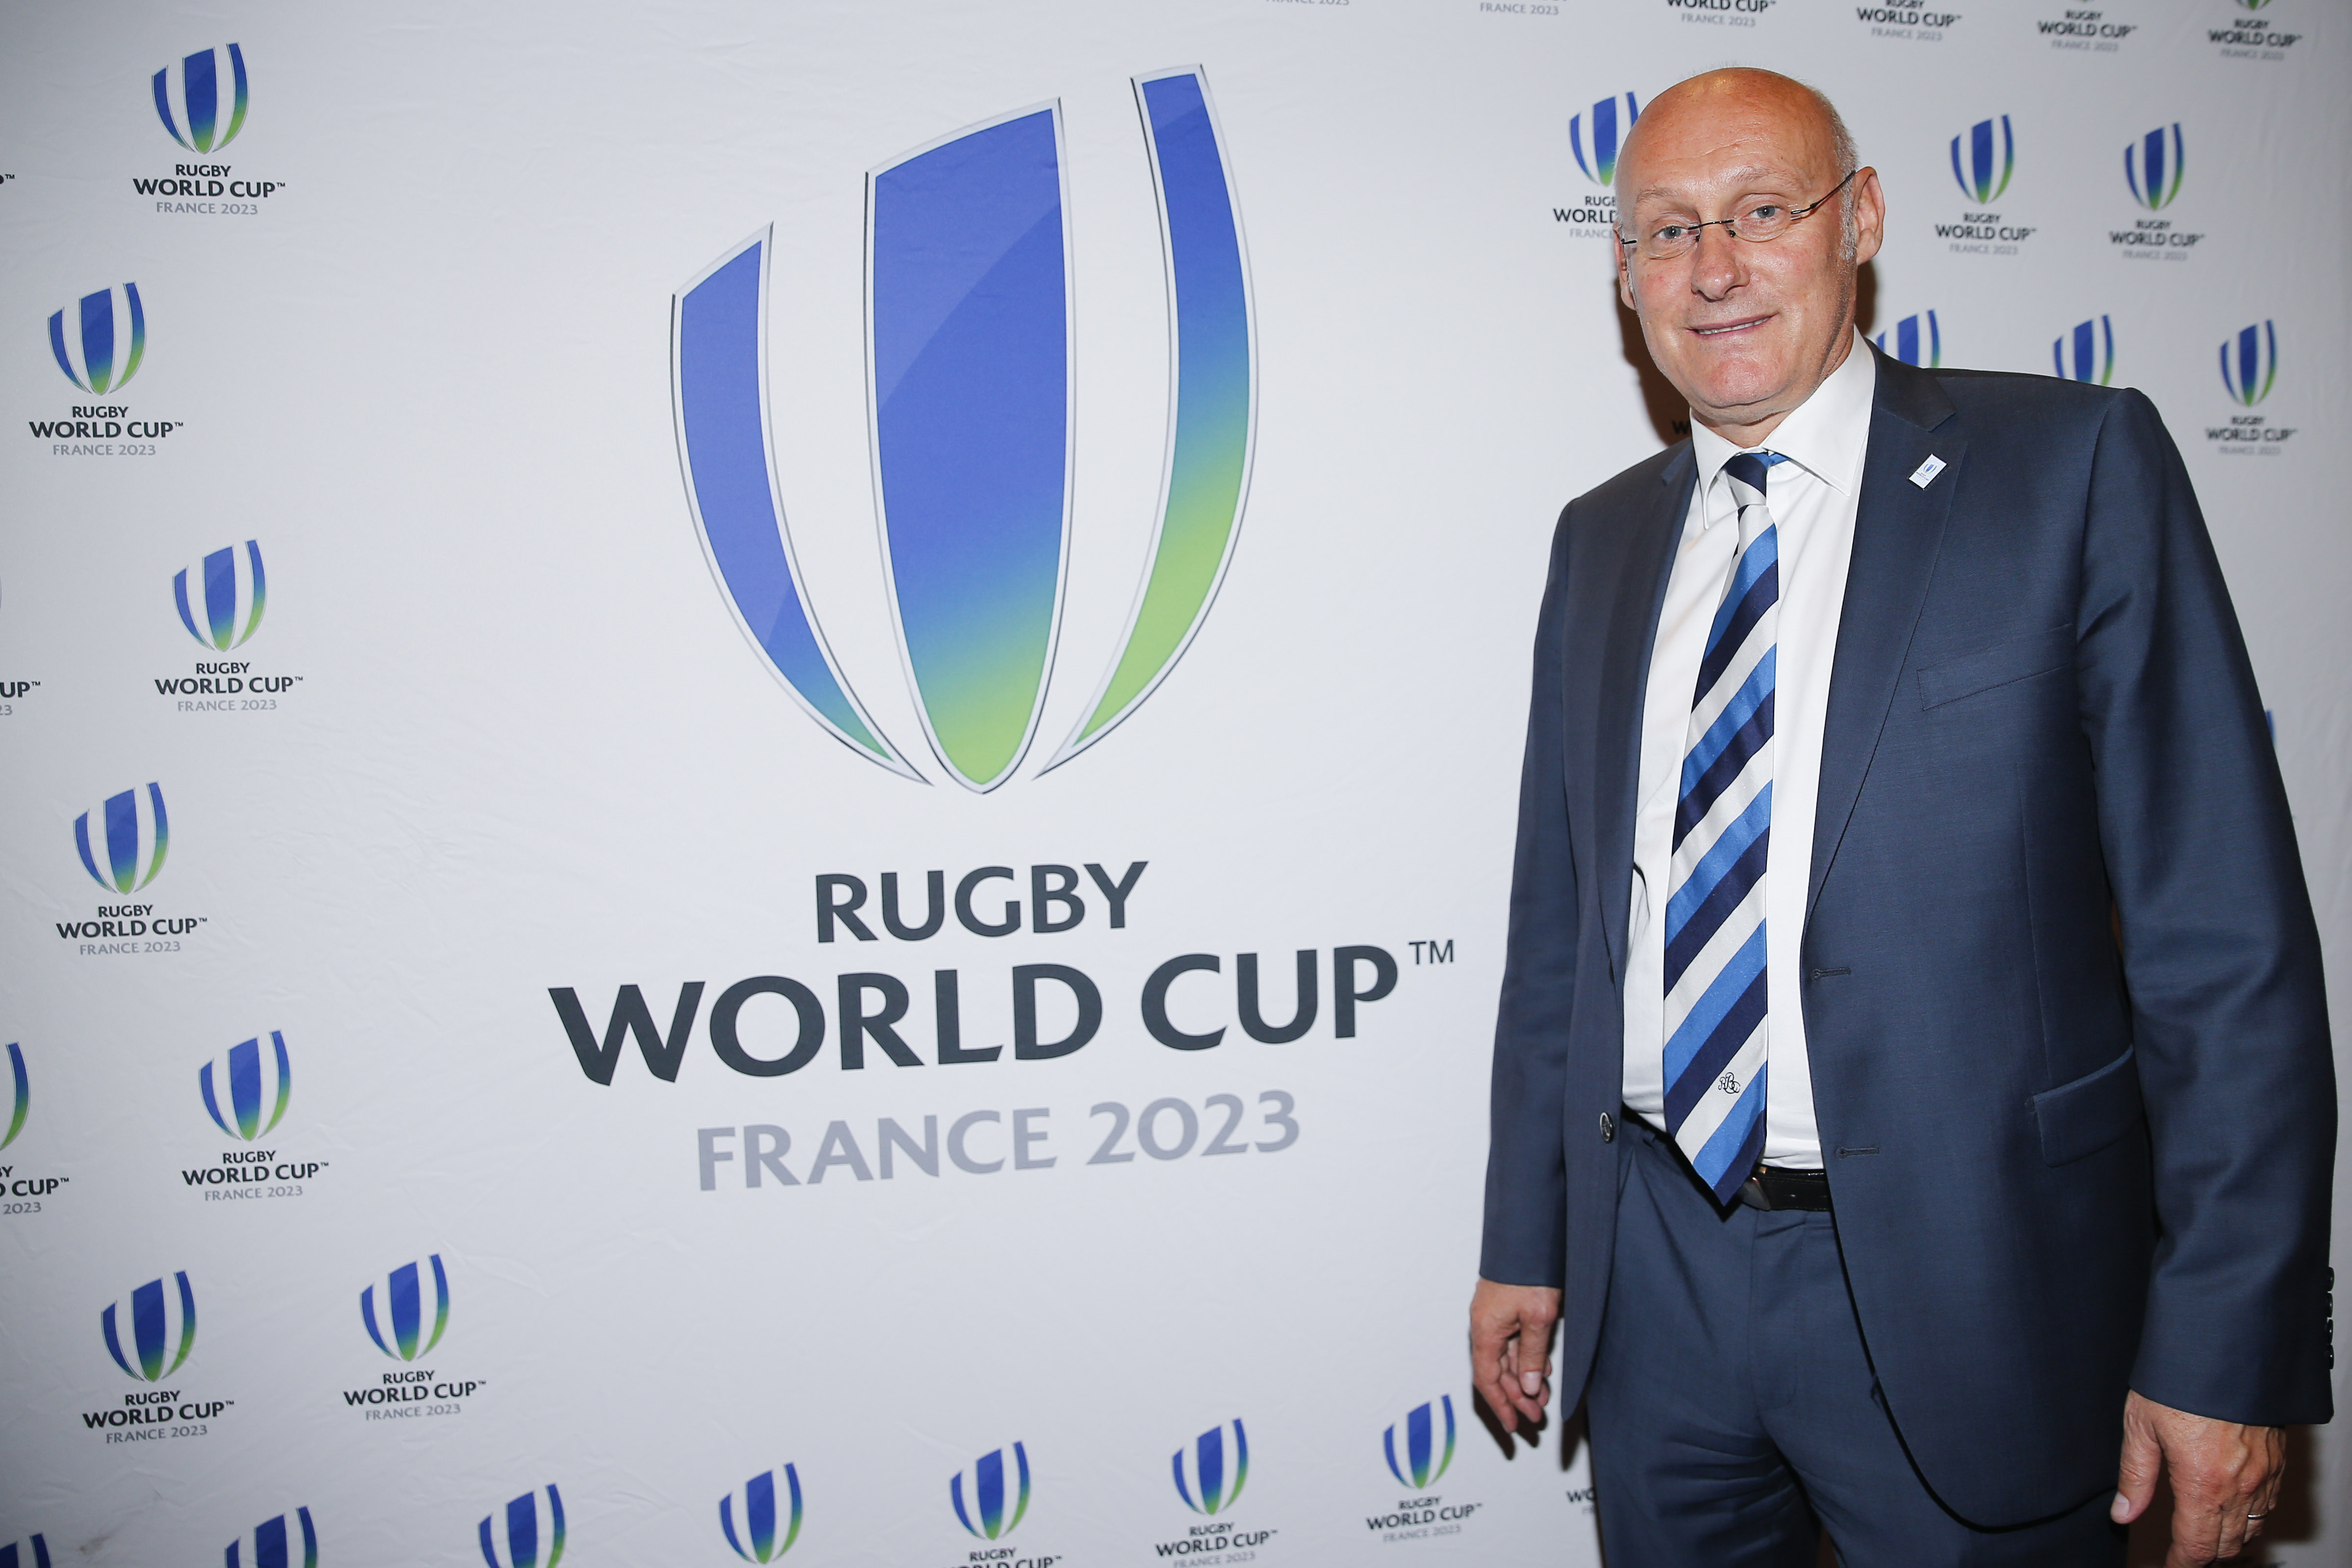 Rugby - Coupe du monde 2023 - Rugby : France 2023 dévoile son logo